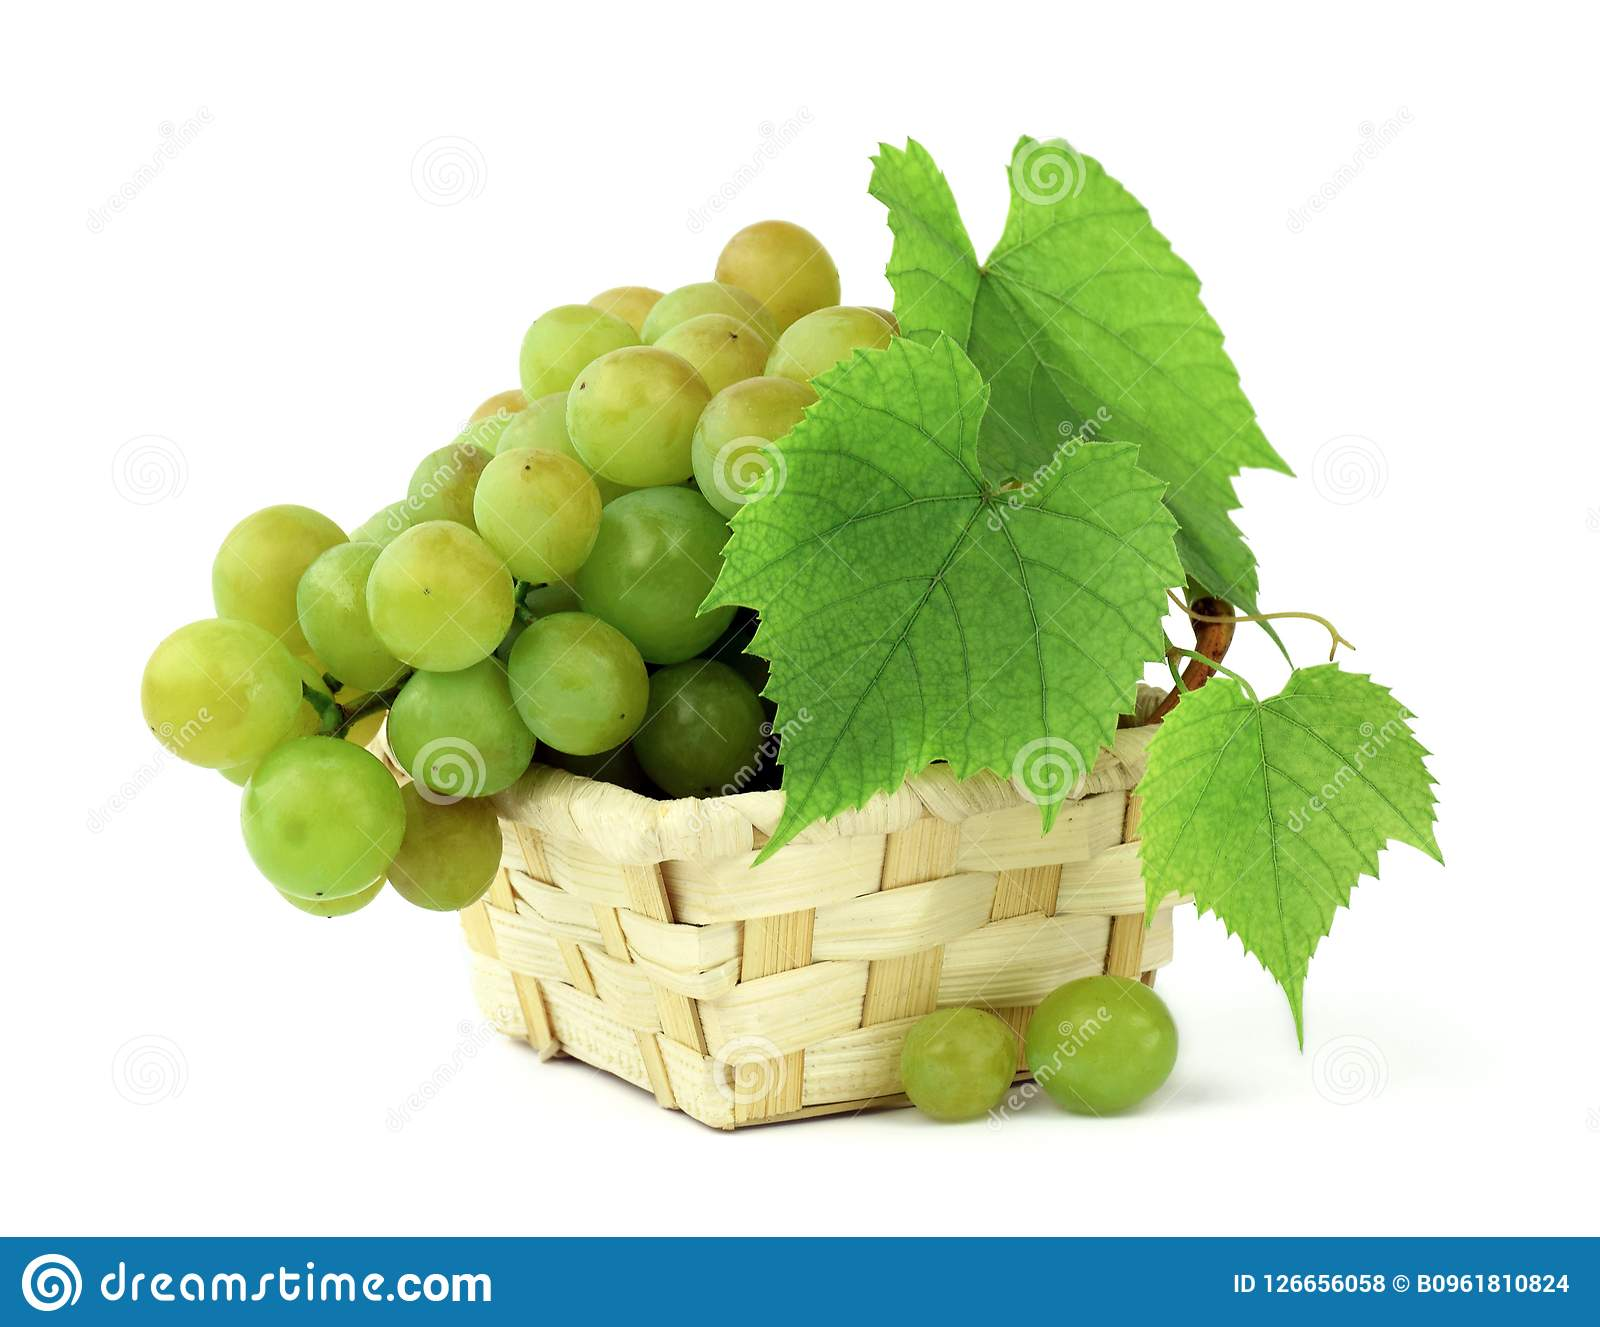 Basket of fragrant grapes isolated on white. Bunches of ripe grapes with leaves and tendrils. Autumn harvest. Close-up.